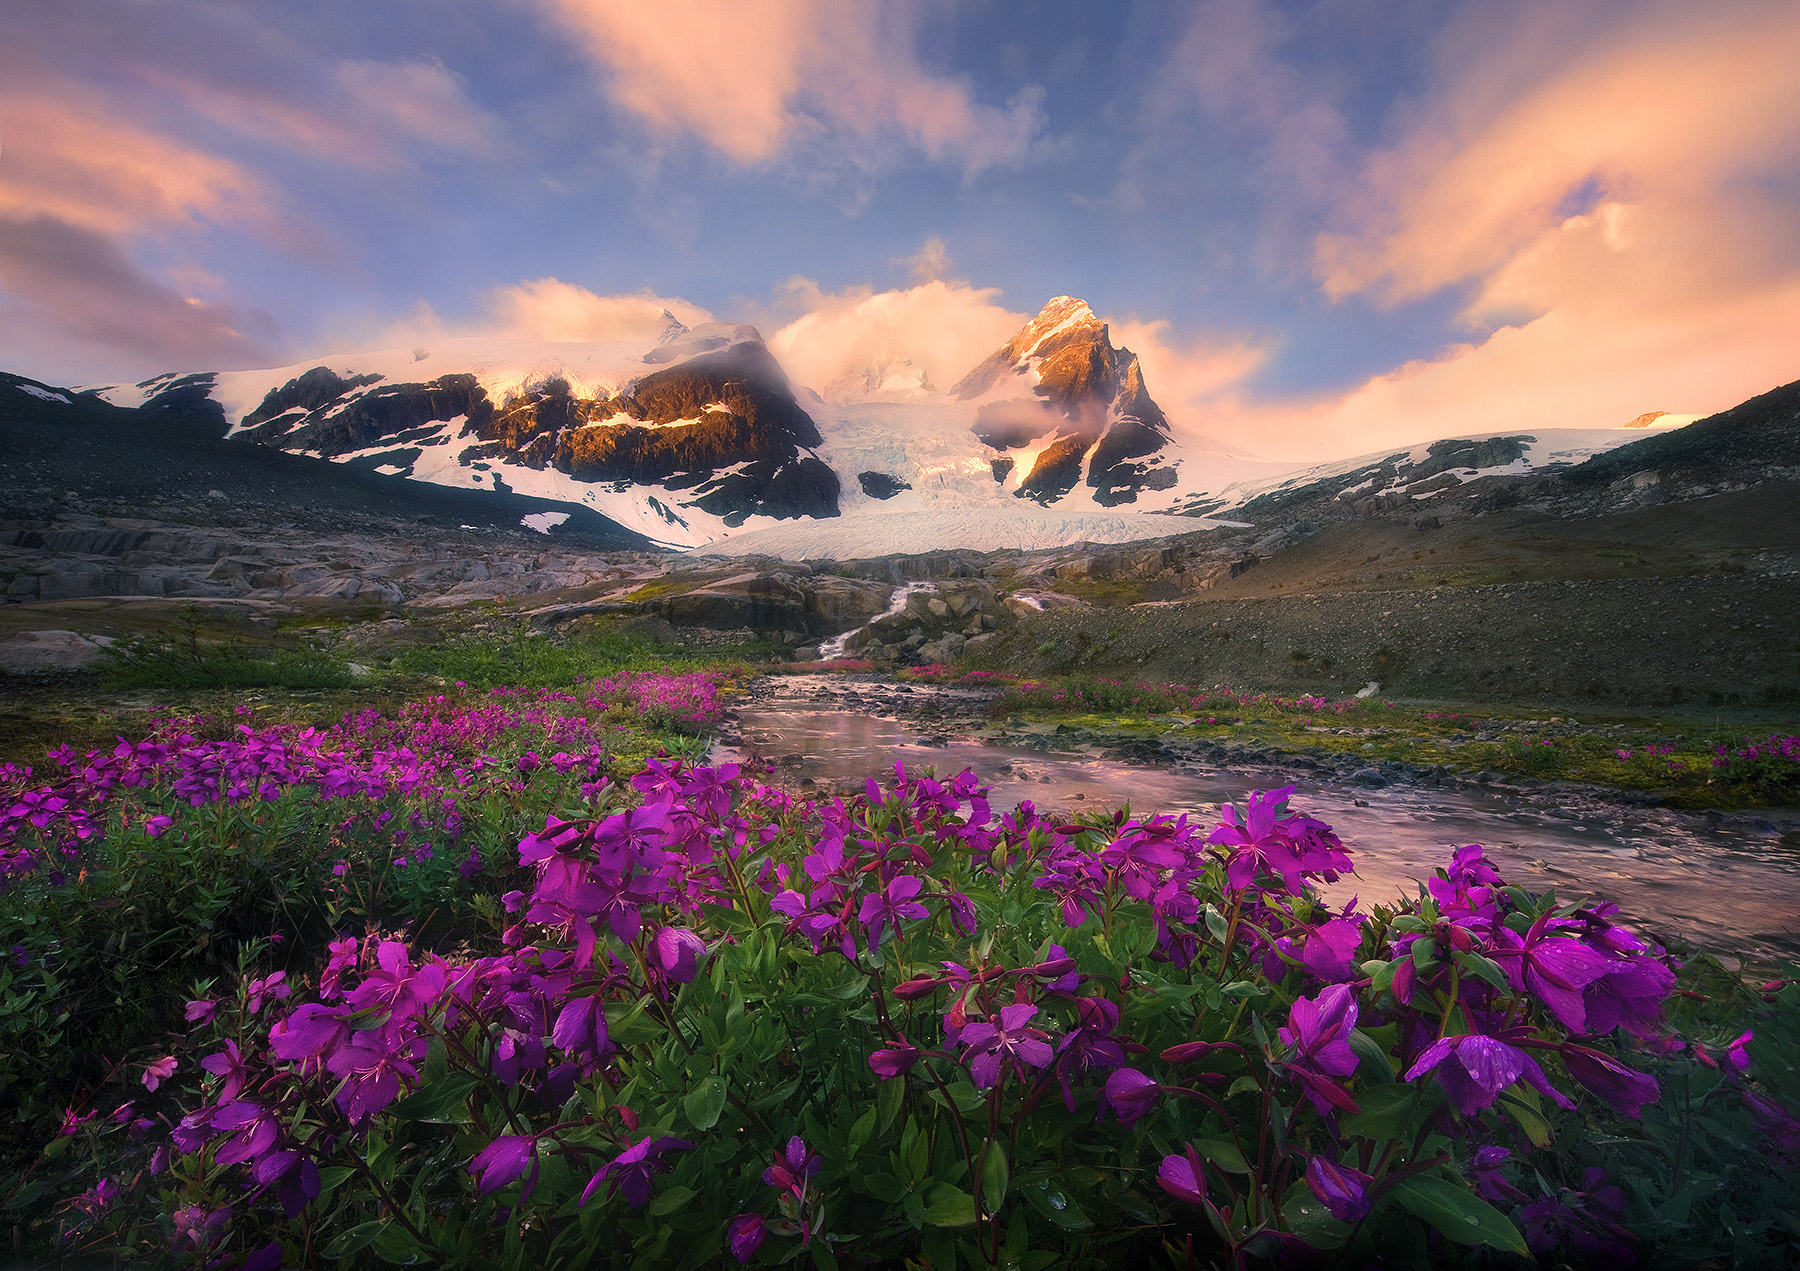 Sunrise colors explode over the huge glaciated peaks and vibrant wildflowers of the Pacific Range, in central British Columbia...